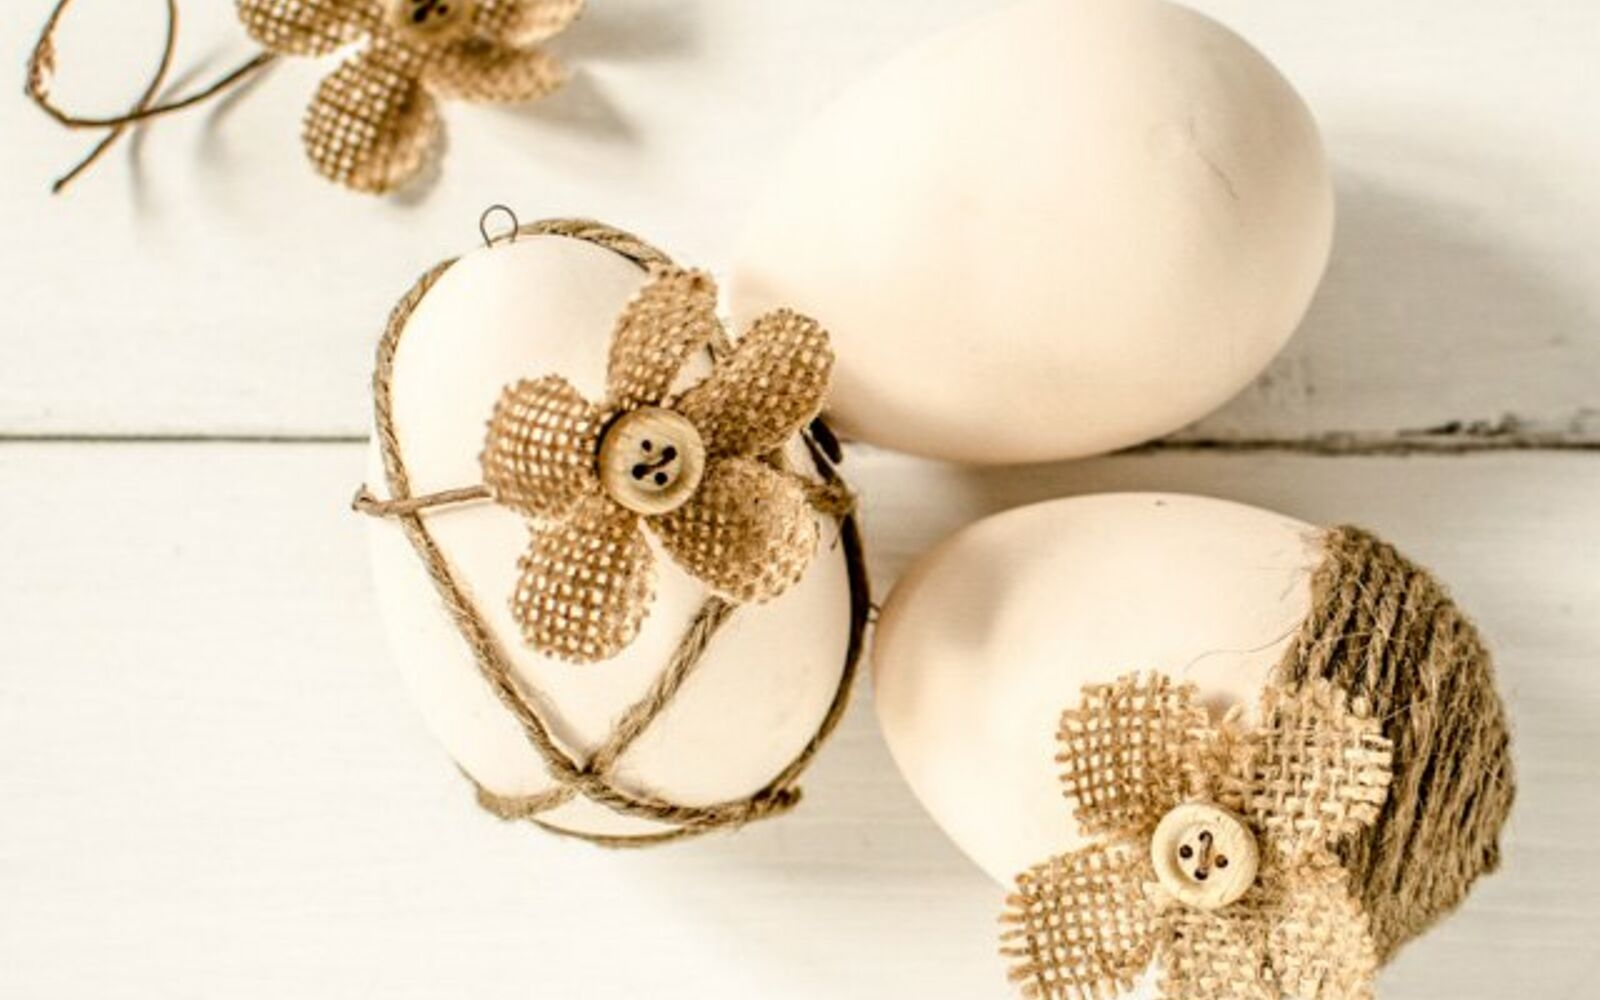 s 25 quick easter egg ideas that are just too stinkin cute, crafts, easter decorations, Craft some in a shabby chic style